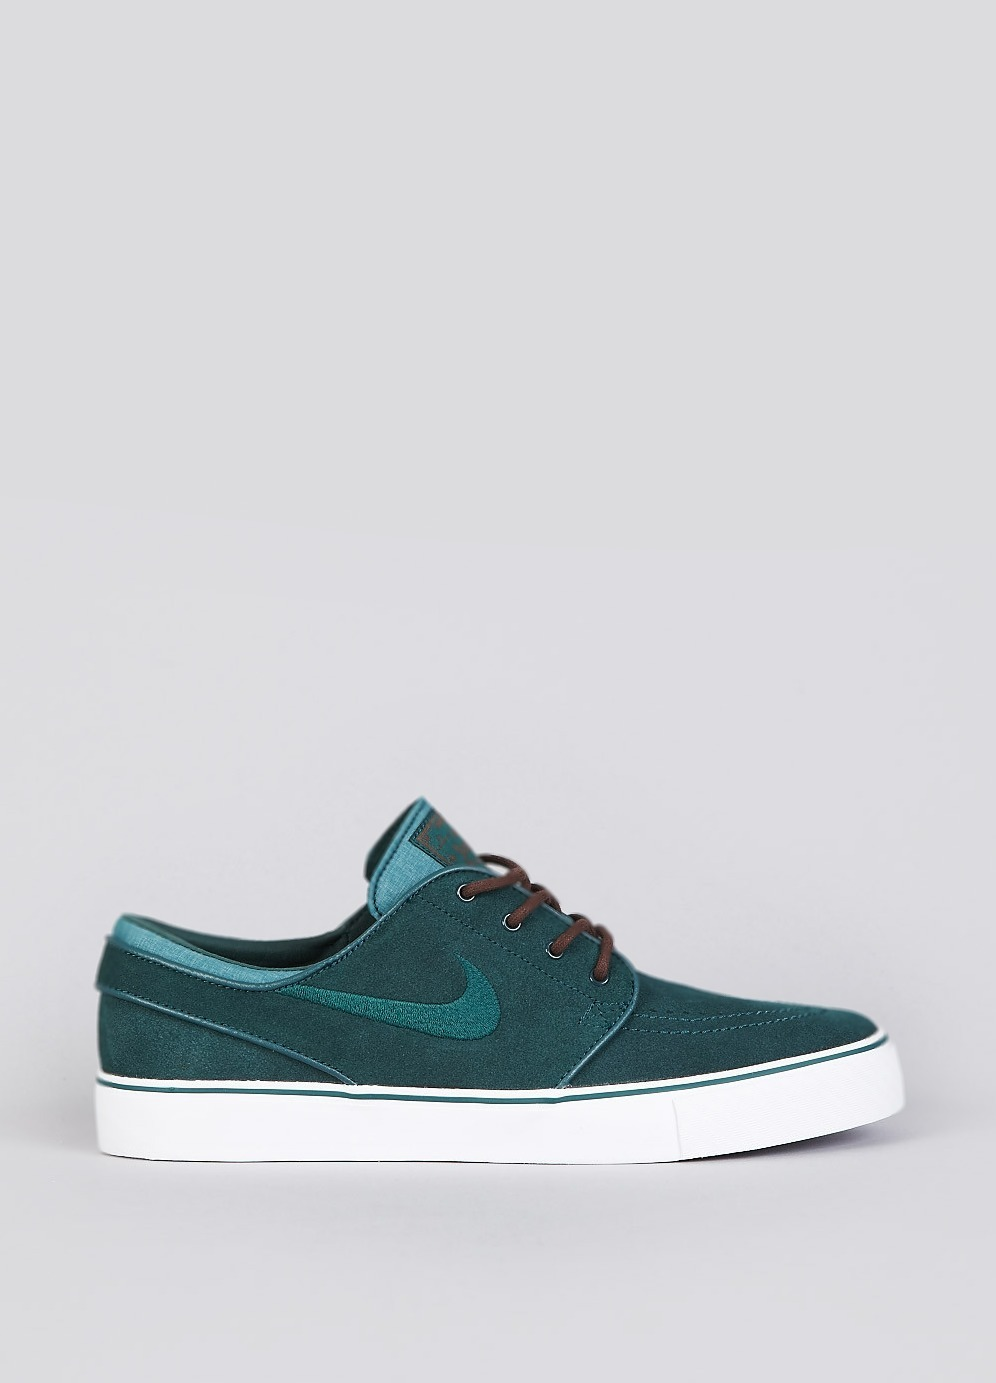 NIKE SB STEFAN JANOSKI DARK ATOMIC TEAL / DARK ATOMIC TEAL